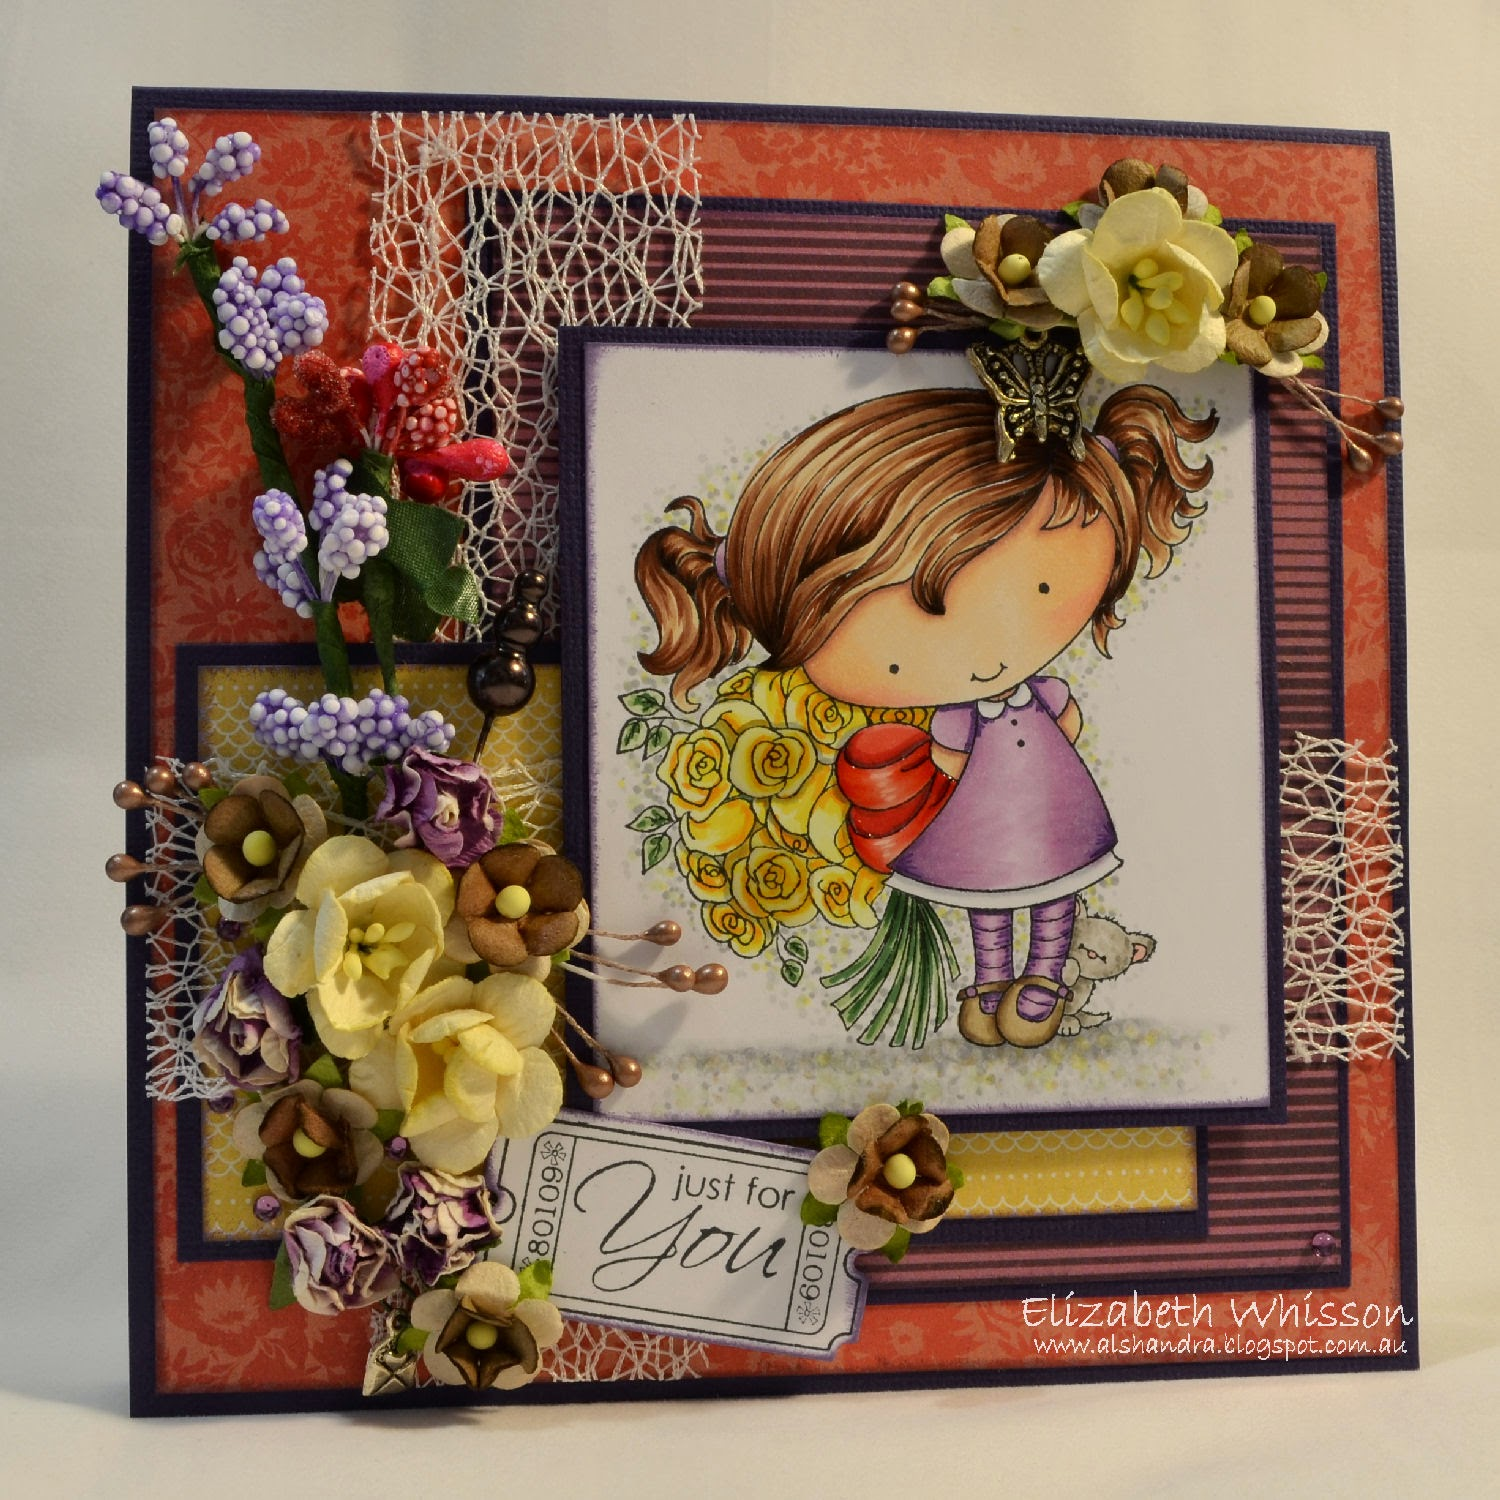 Elizabeth Whisson, Copics, green tara lace, Live and Love crafts flowers, Basic Grey RSVP, Whimsy Stamps, Little Darling Rubber Stamps Candibean Wendy's Bouquet, Ticket Friendship Sentiments and die, handmade card